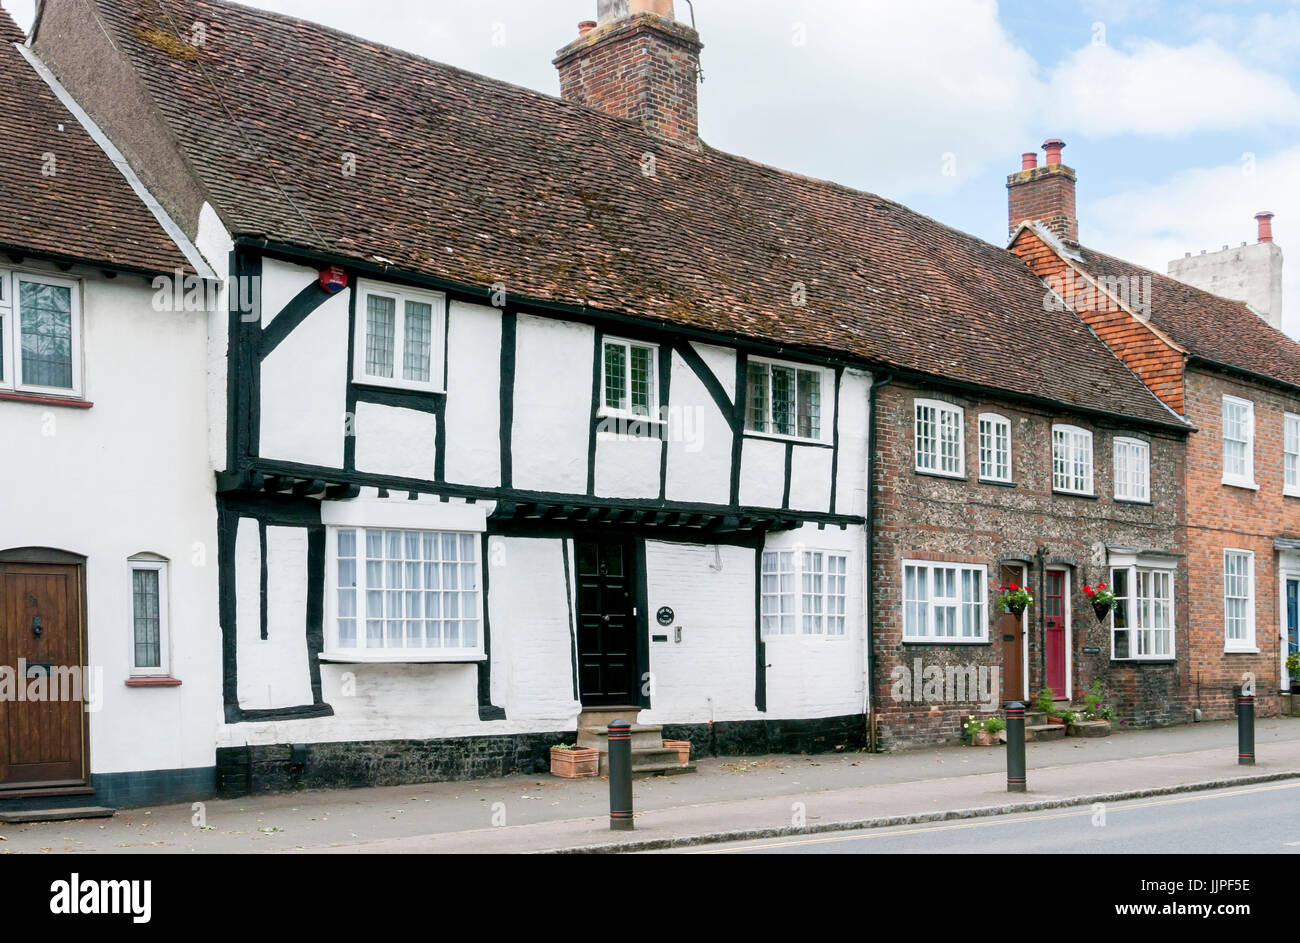 A row of classical georgian and tudor style terrace houses in the high street of wendover, buckinghamshire, in the - Stock Image